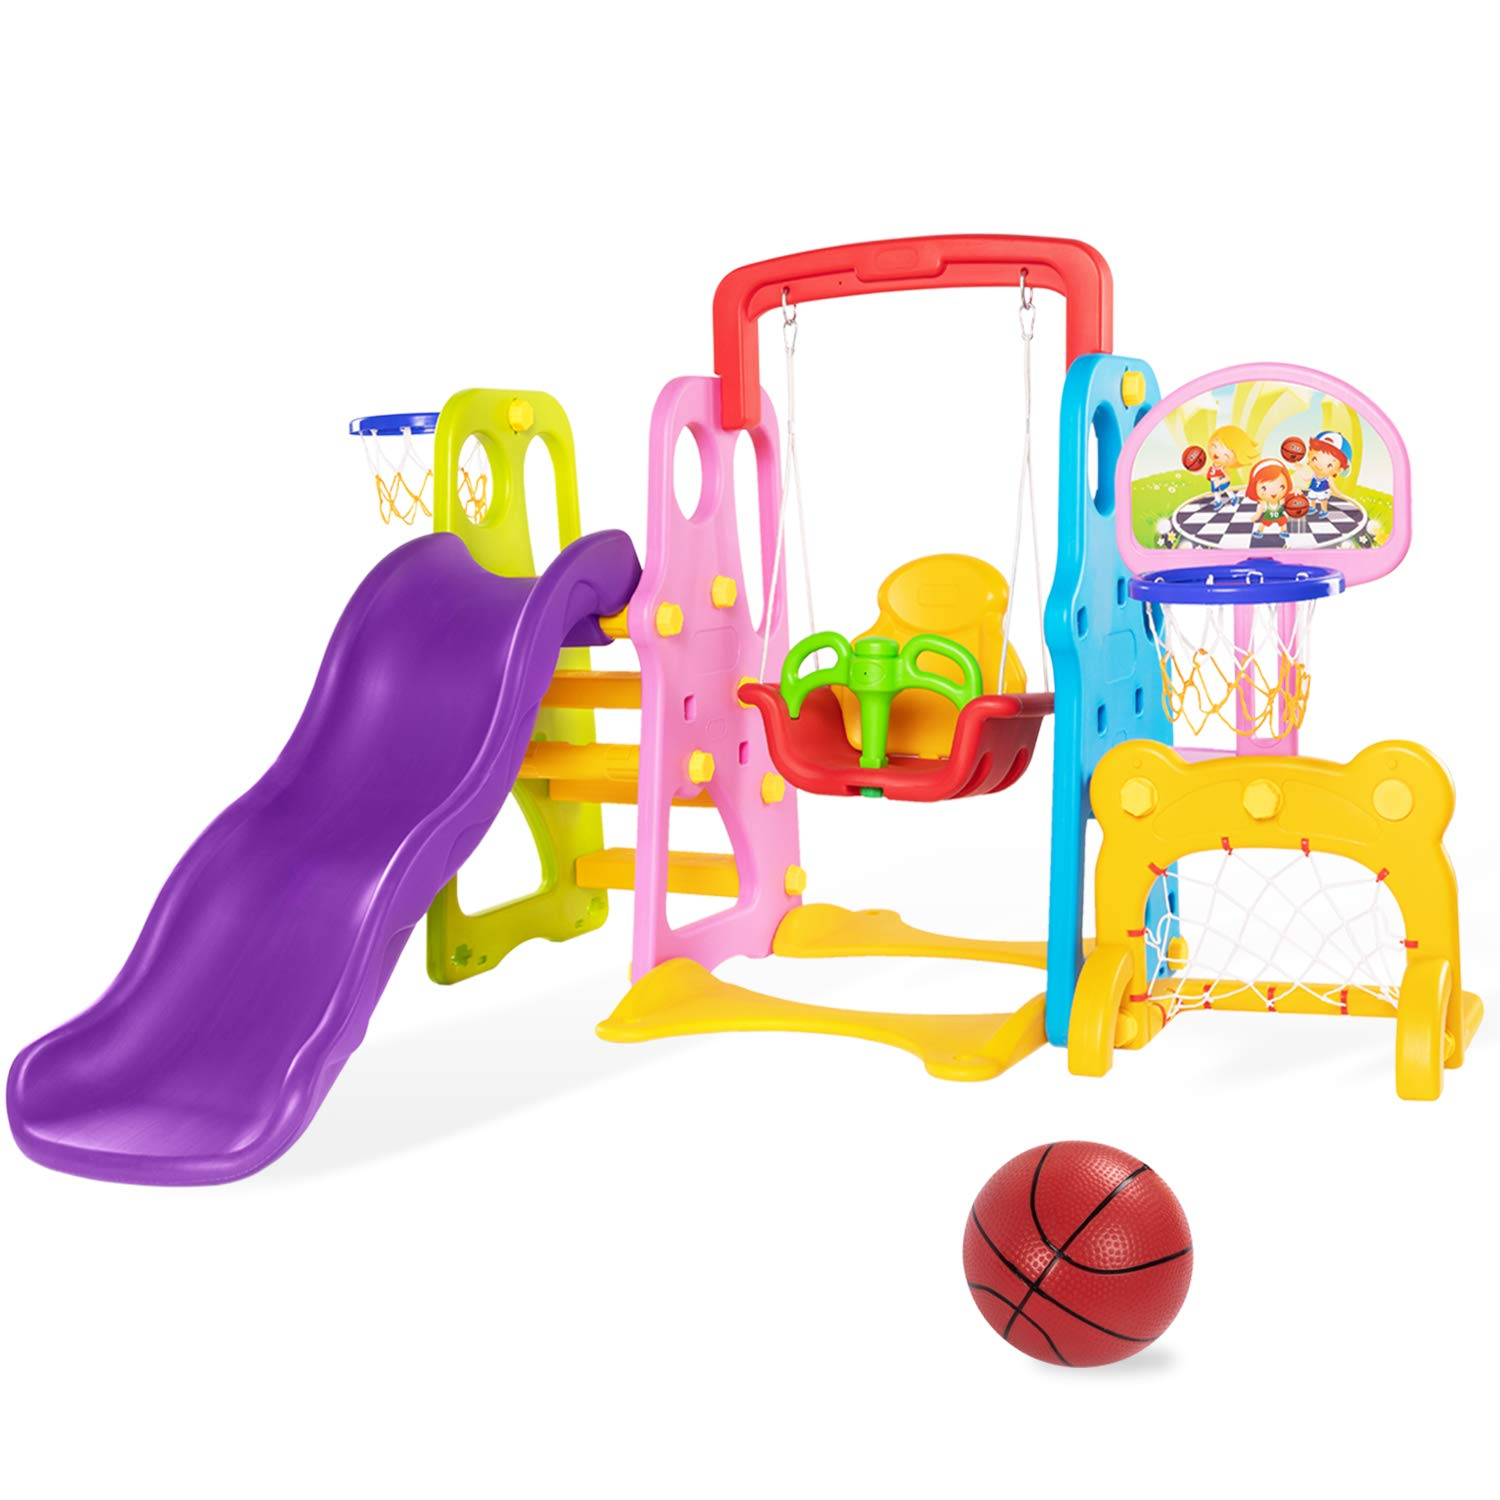 Lauraland Toddler Swing Set, 6 in 1 Climber Slide Playset with Two-Height Basketball Hoop, Soccer Goal, Baby Swing, Writing Board and Easy Climb Stairs, Kids Playset for Backyard and Indoor by Lauraland